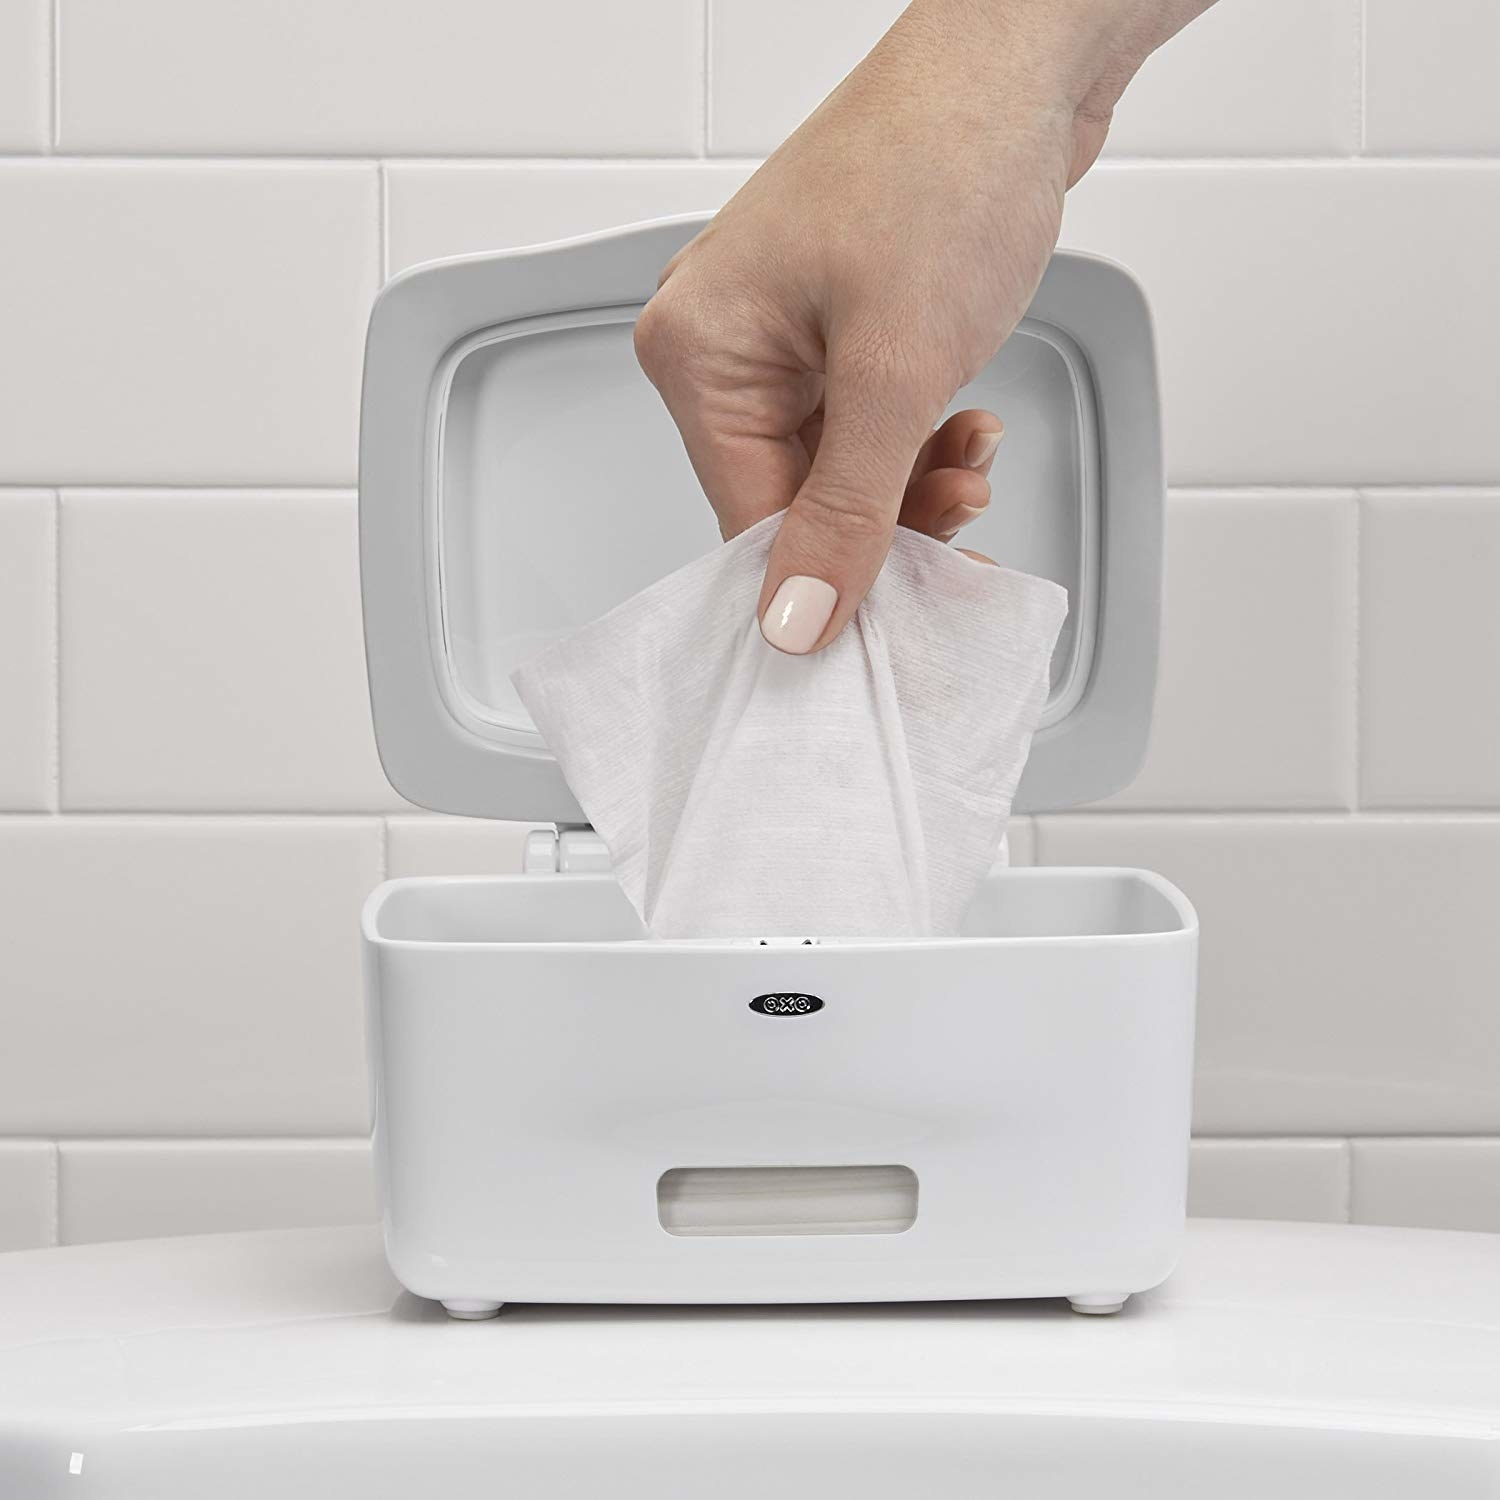 a hand reaching in to pull out a wipe from the dispenser